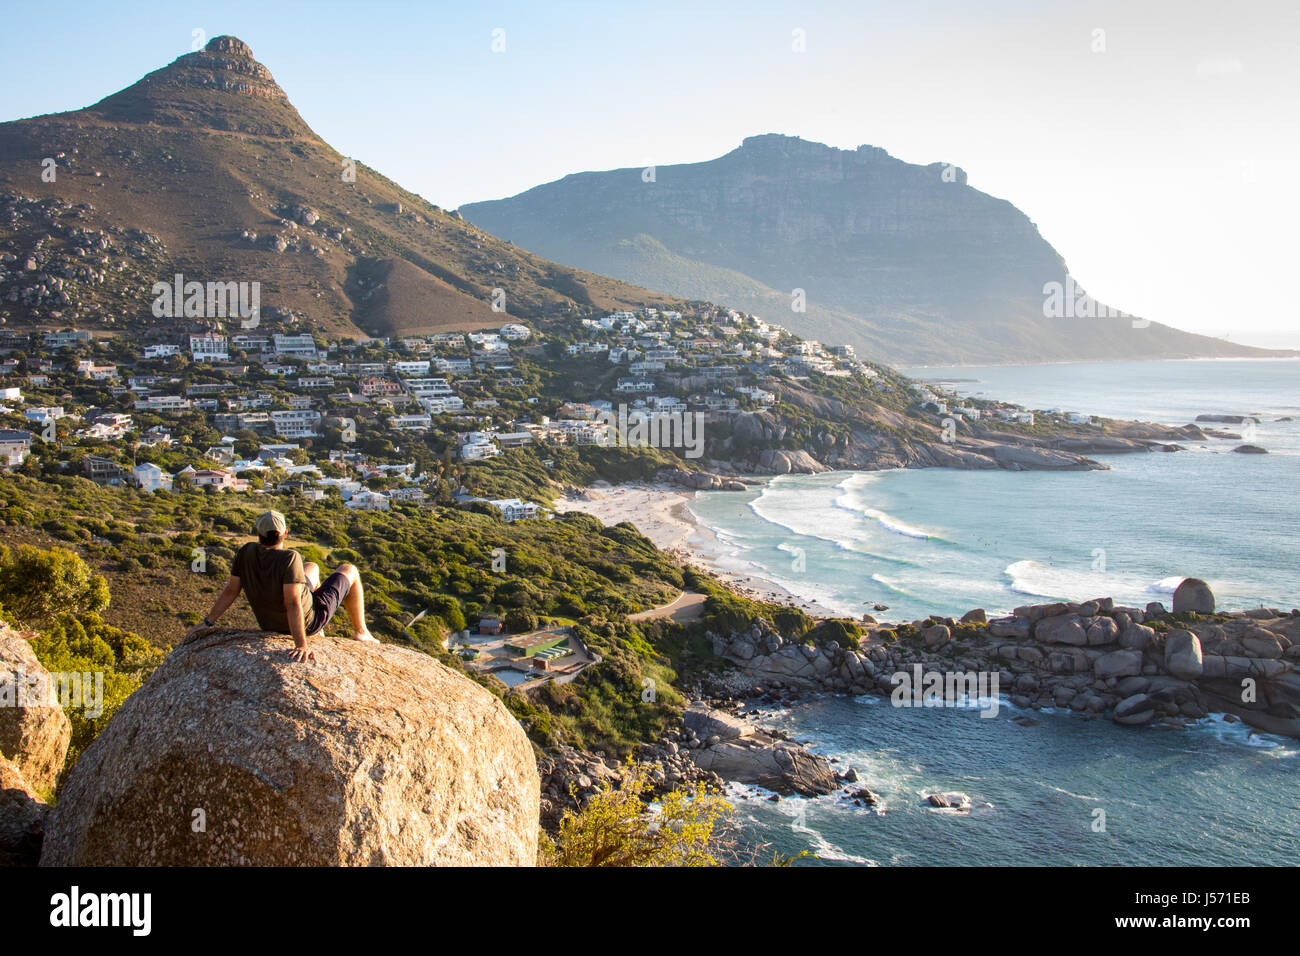 Hout Bay, Cape Town, South Africa - Stock Image